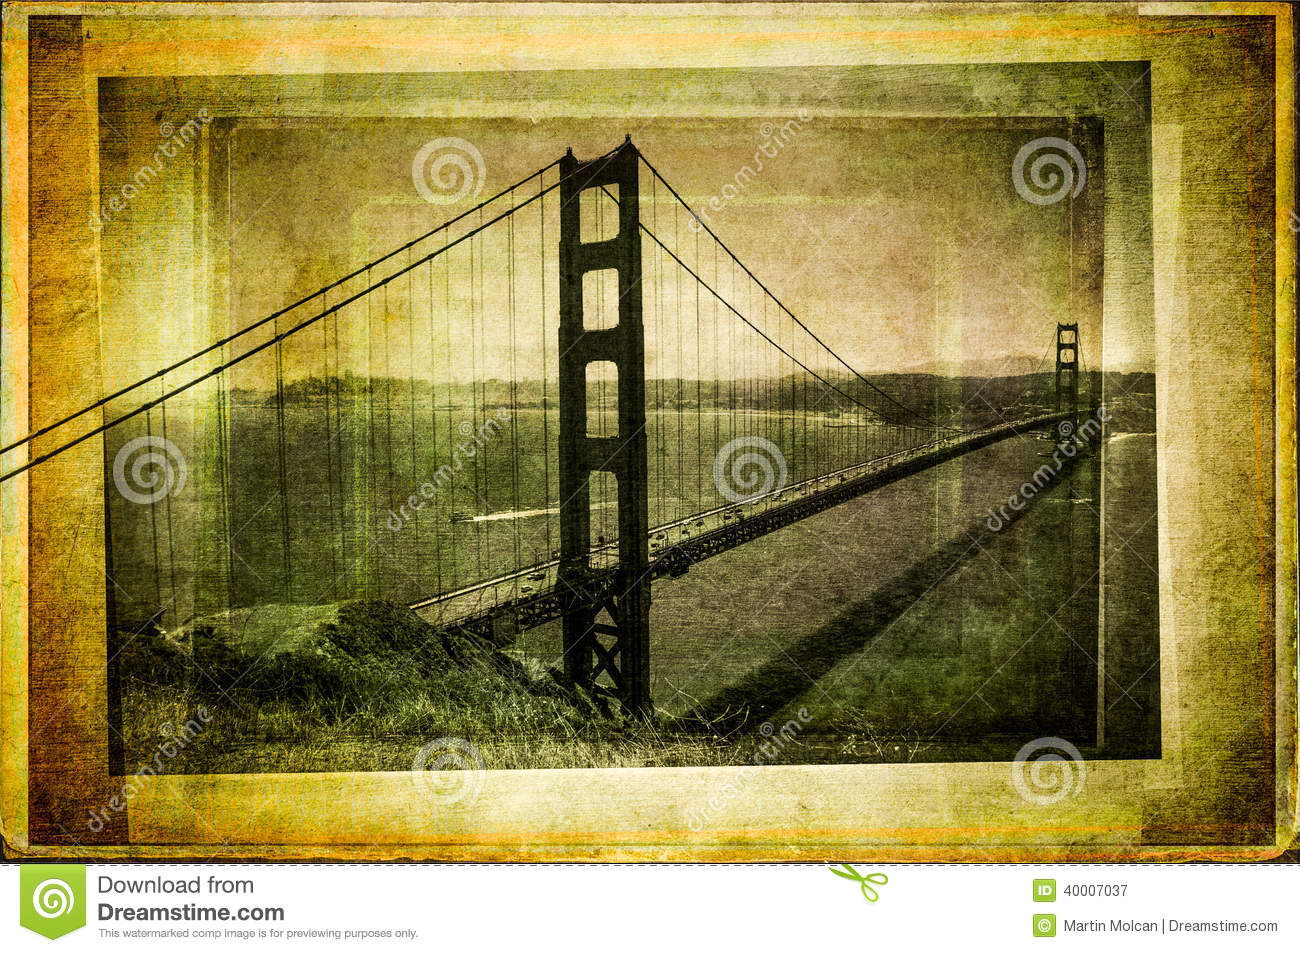 Golden gate bridge in Weinlesegefilterter und Texturart